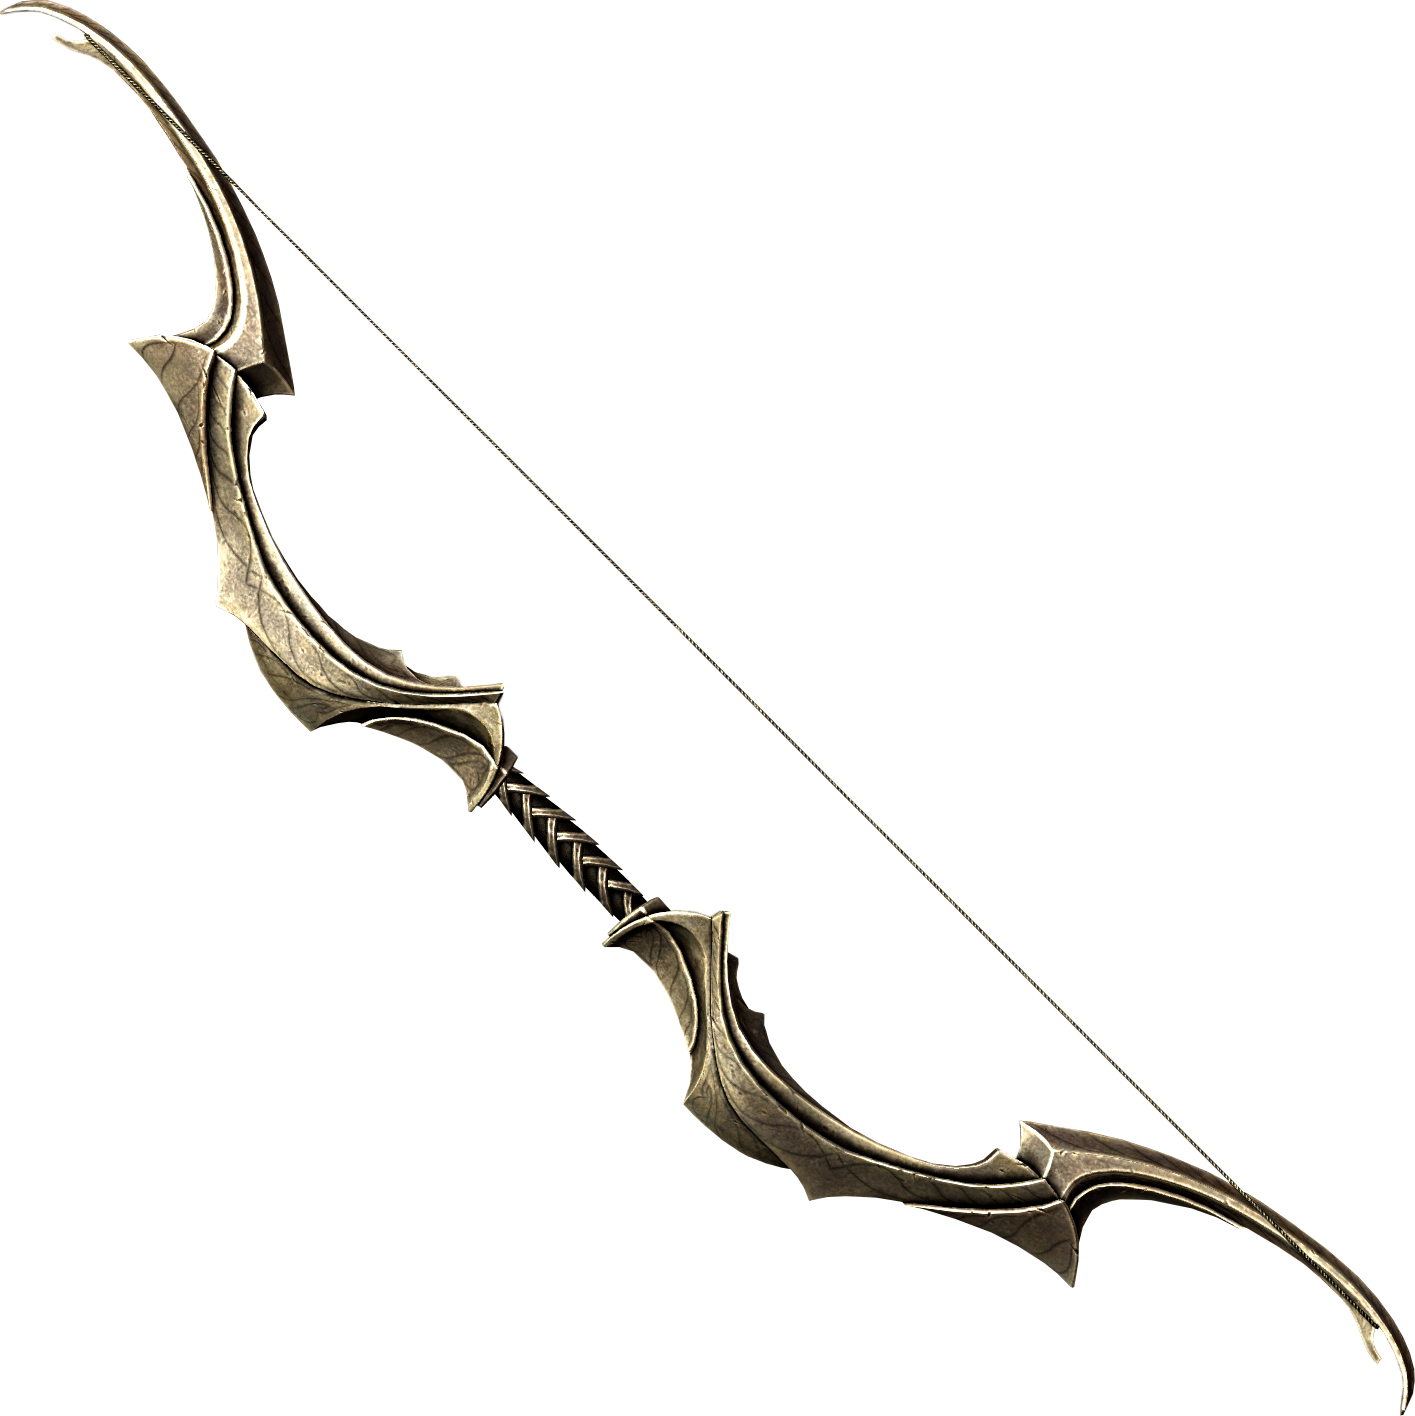 weapon drawing bow